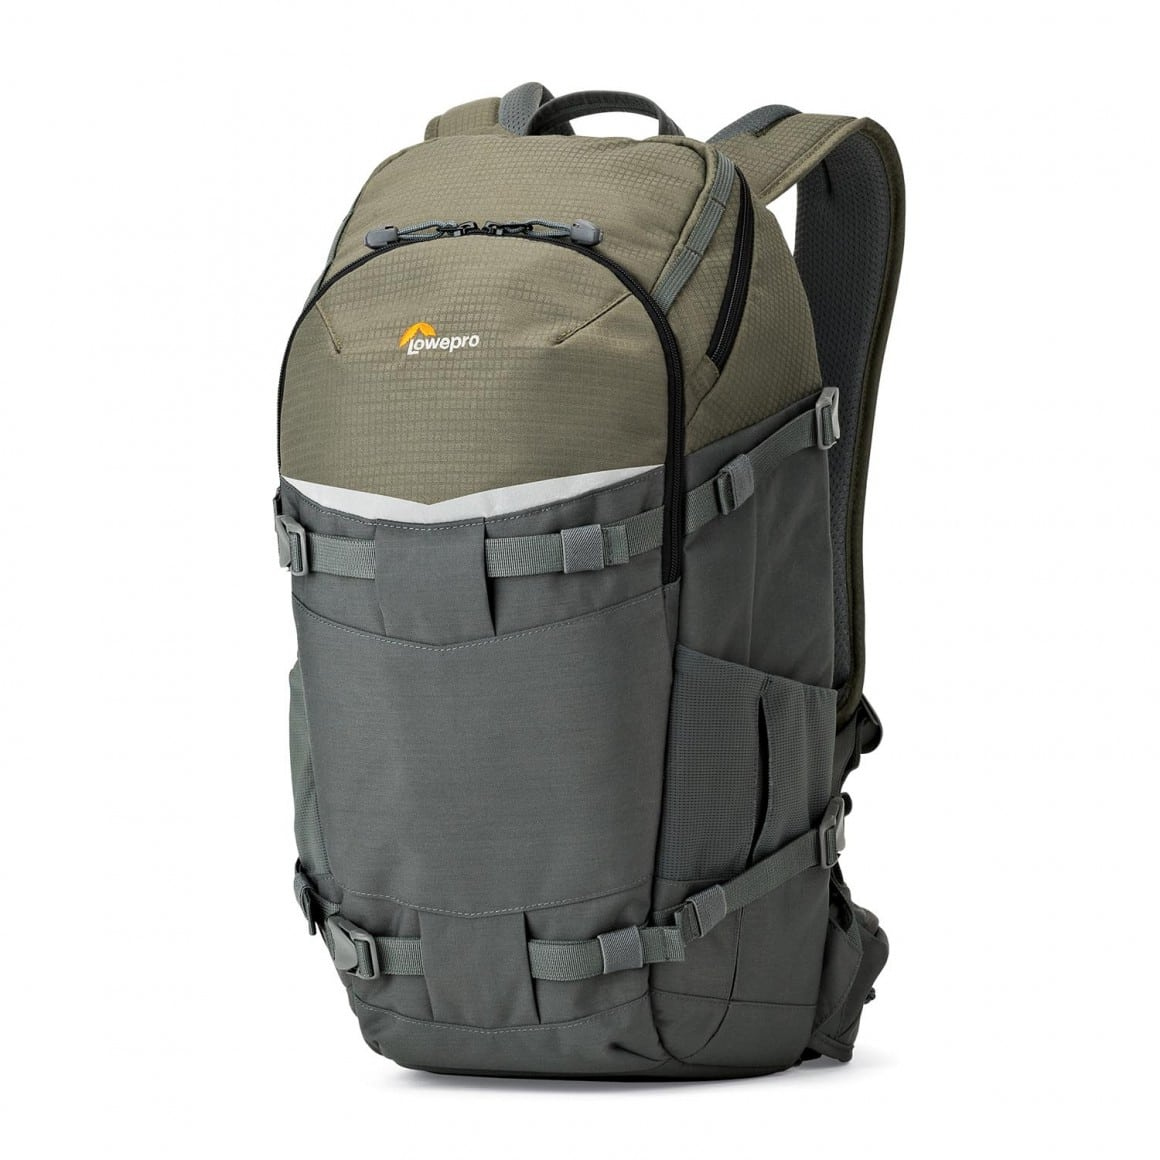 Lowepro Flipside Trek BP 350 AW Kameratasche  All Weather AW Cover Grün, Grau für 149,00 Euro